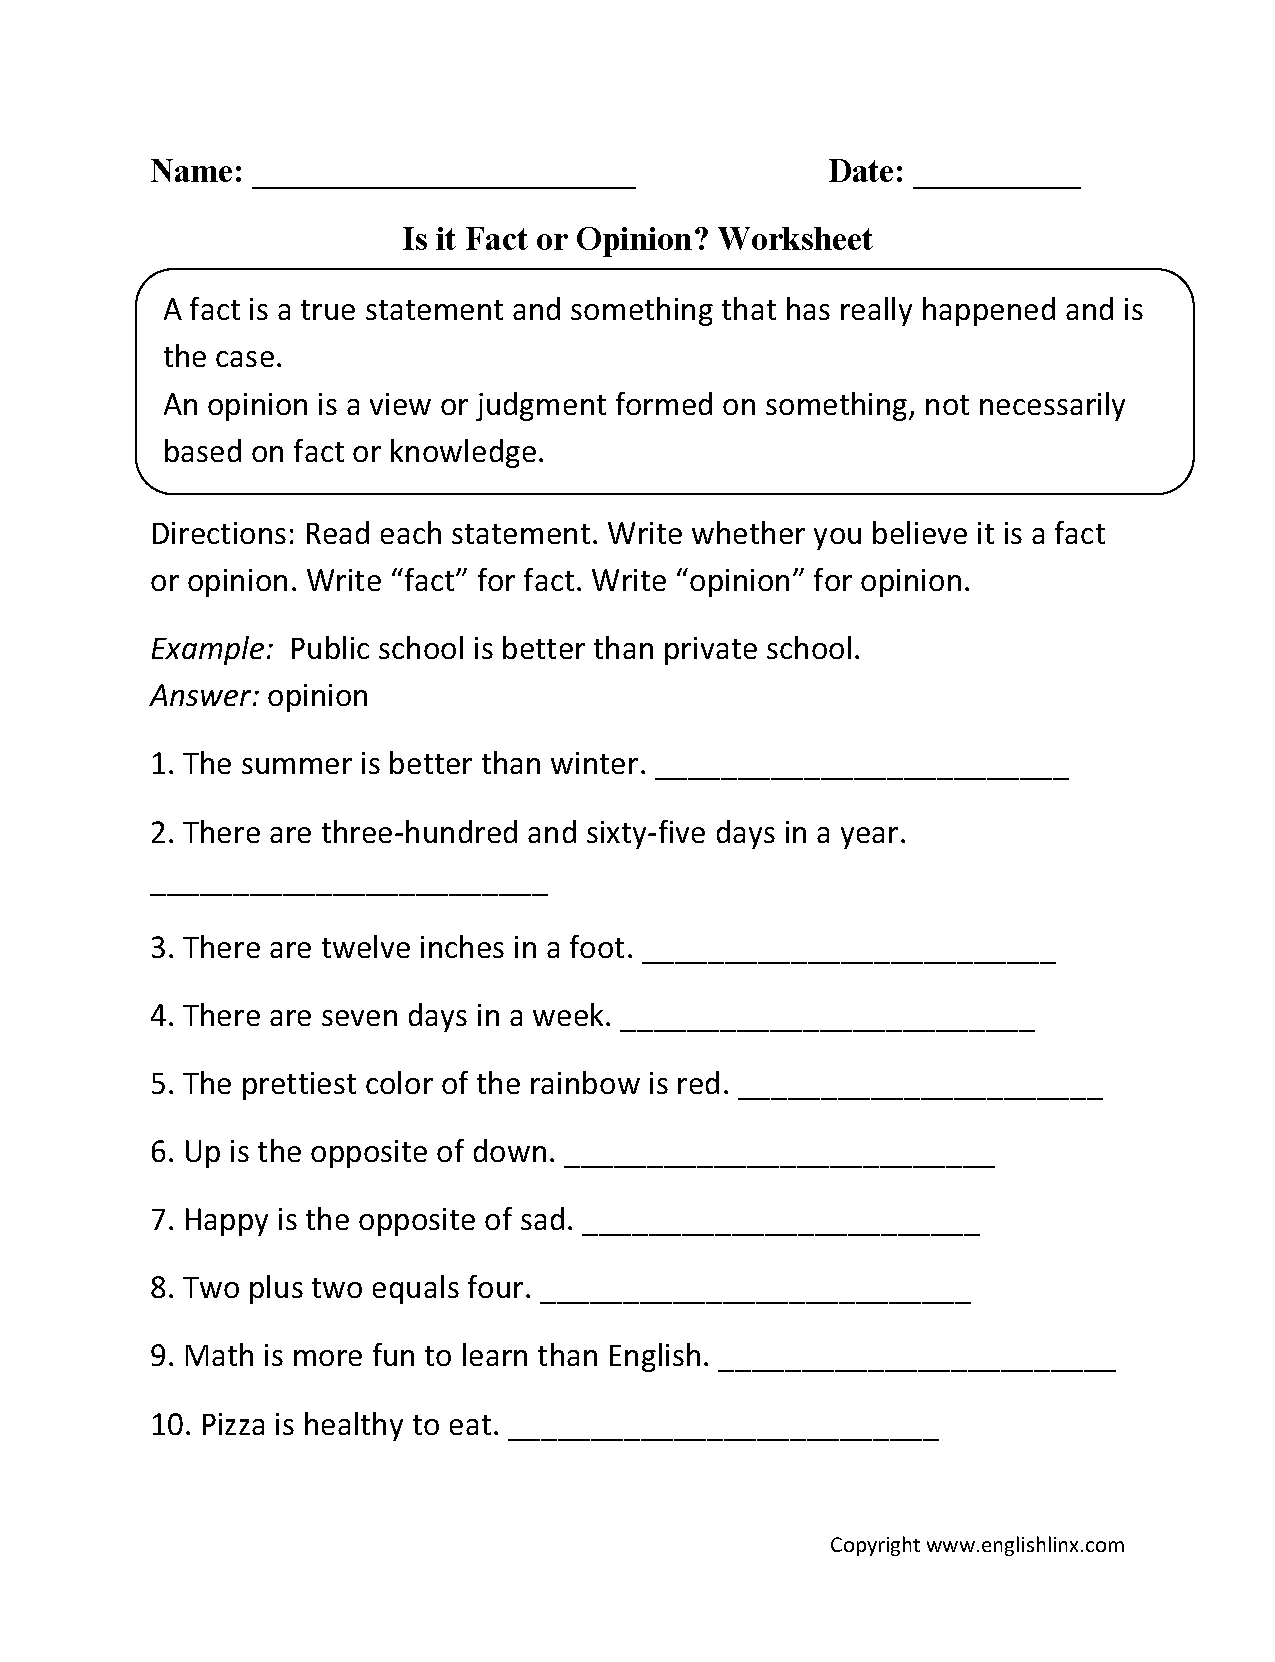 worksheet Facts And Opinions Worksheet reading worksheets fact and opinion is it or worksheet